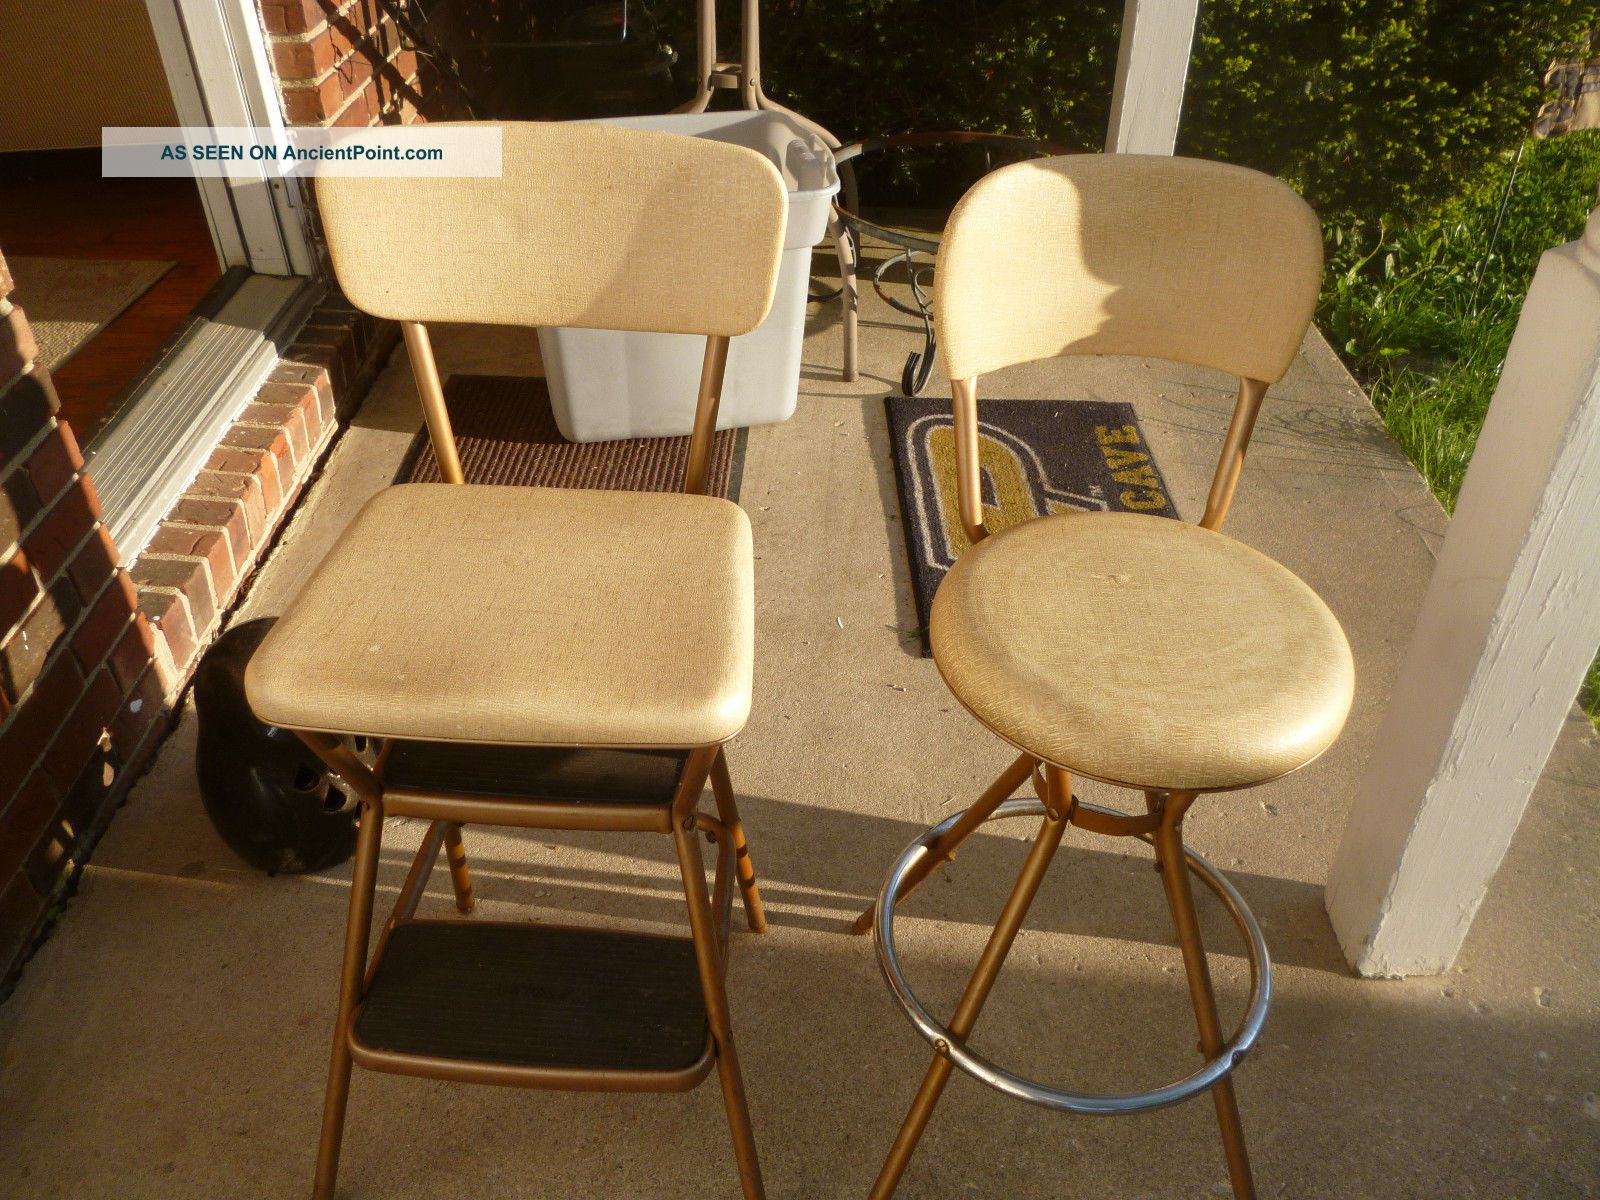 2 Vintage Mid - Century Cosco Chrome Swivel Stool & Flip Up Step Stool Chair Mid-Century Modernism photo